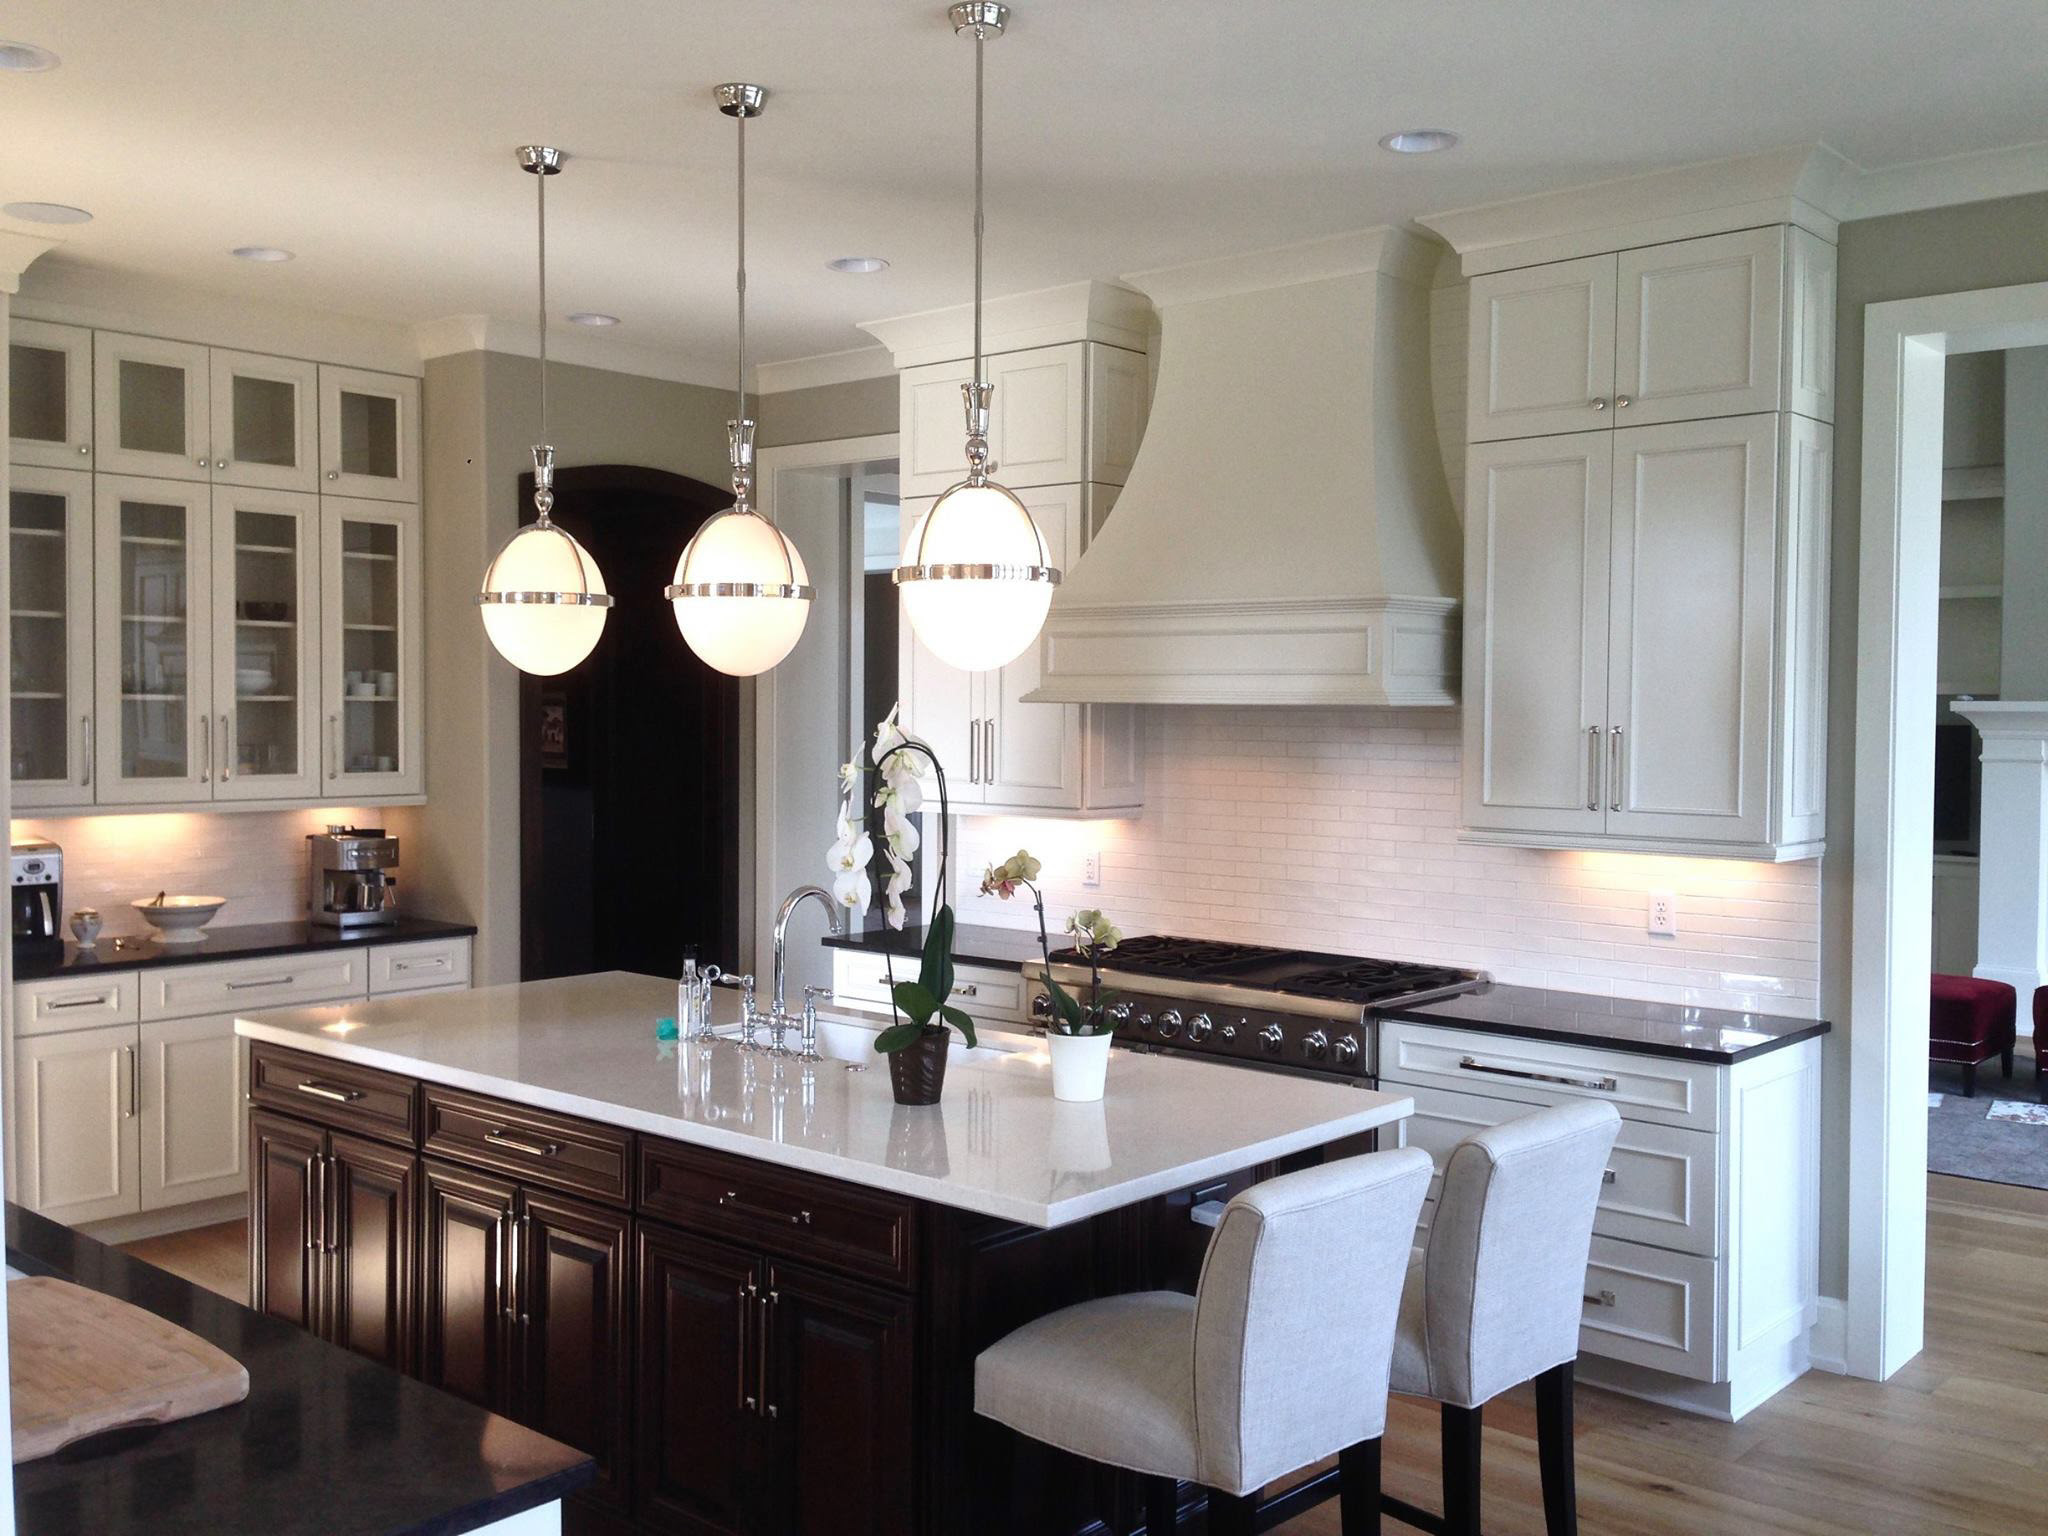 Our Home Improvement and Home-A-Rama Special | Carmel ...